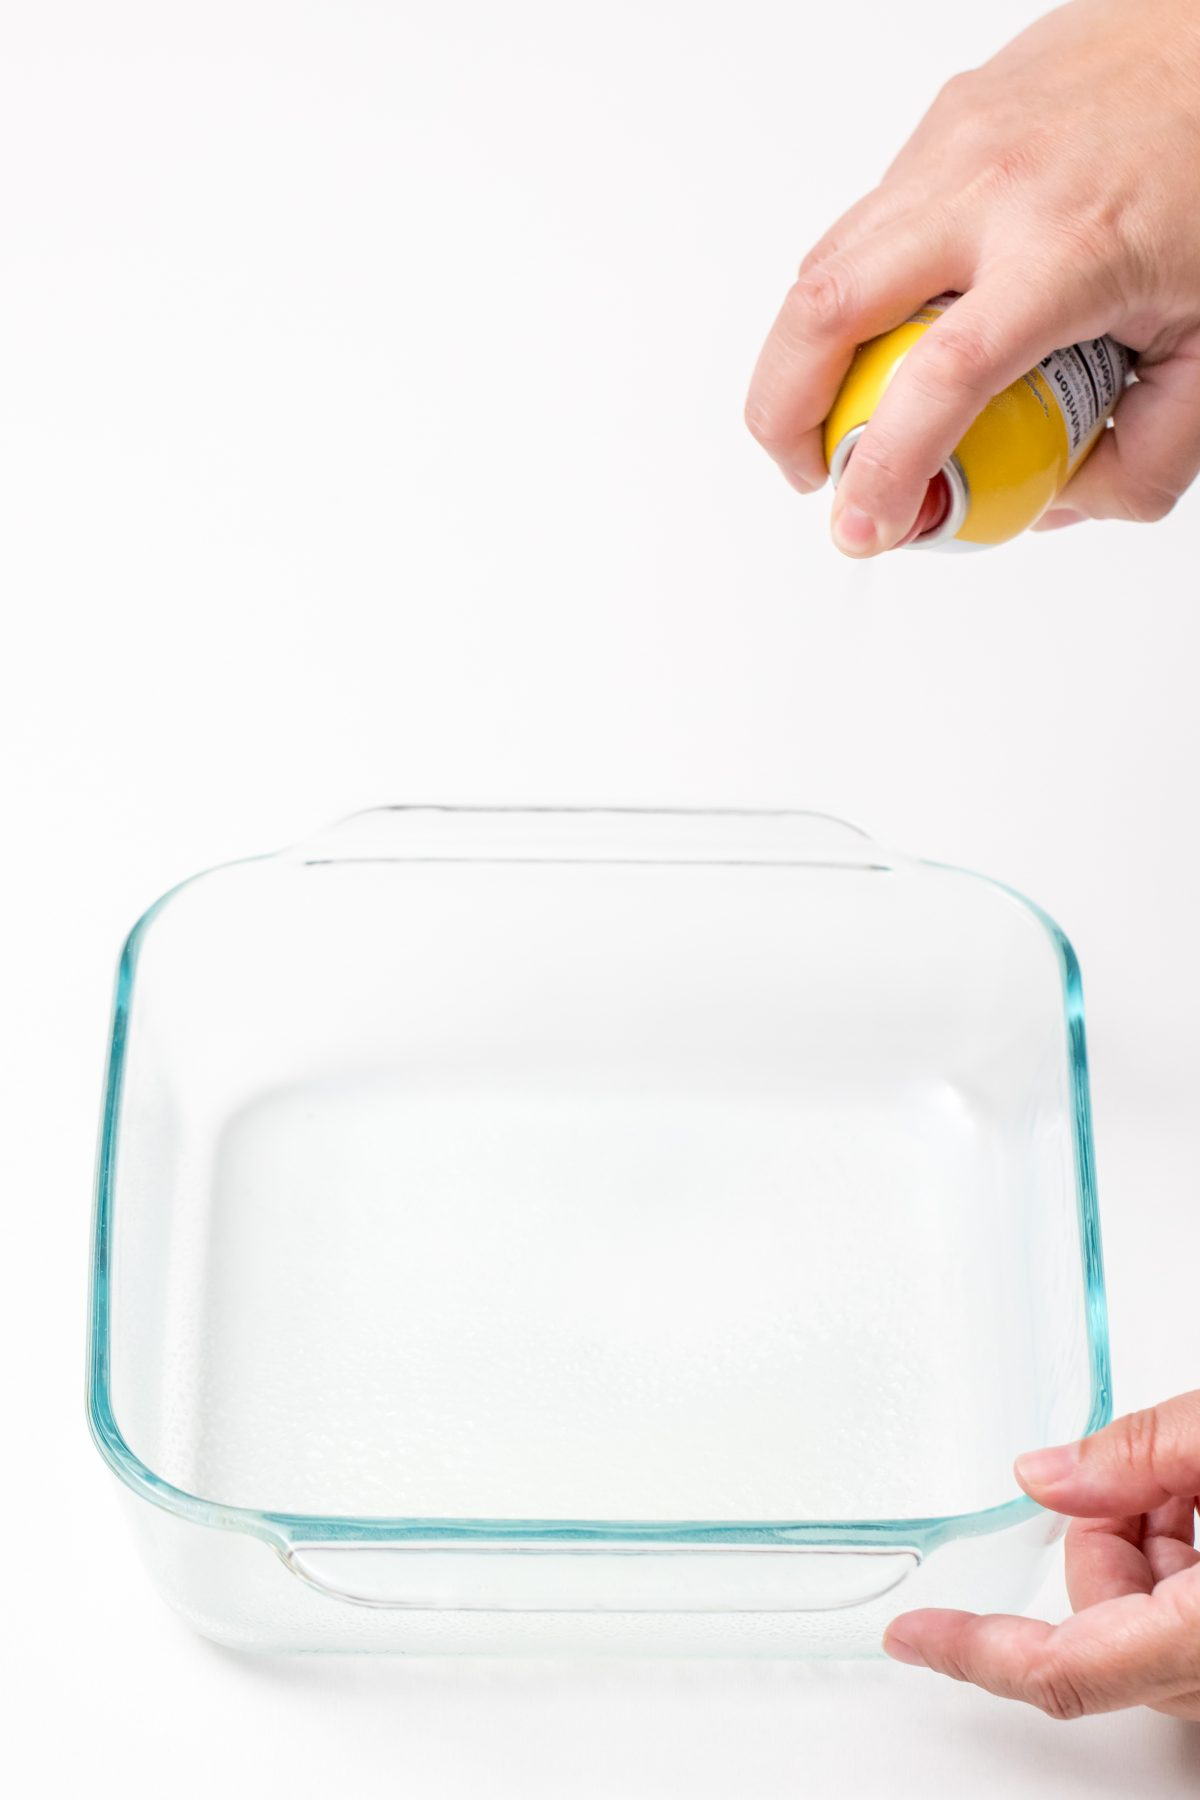 Spray baking dish with cooking spray